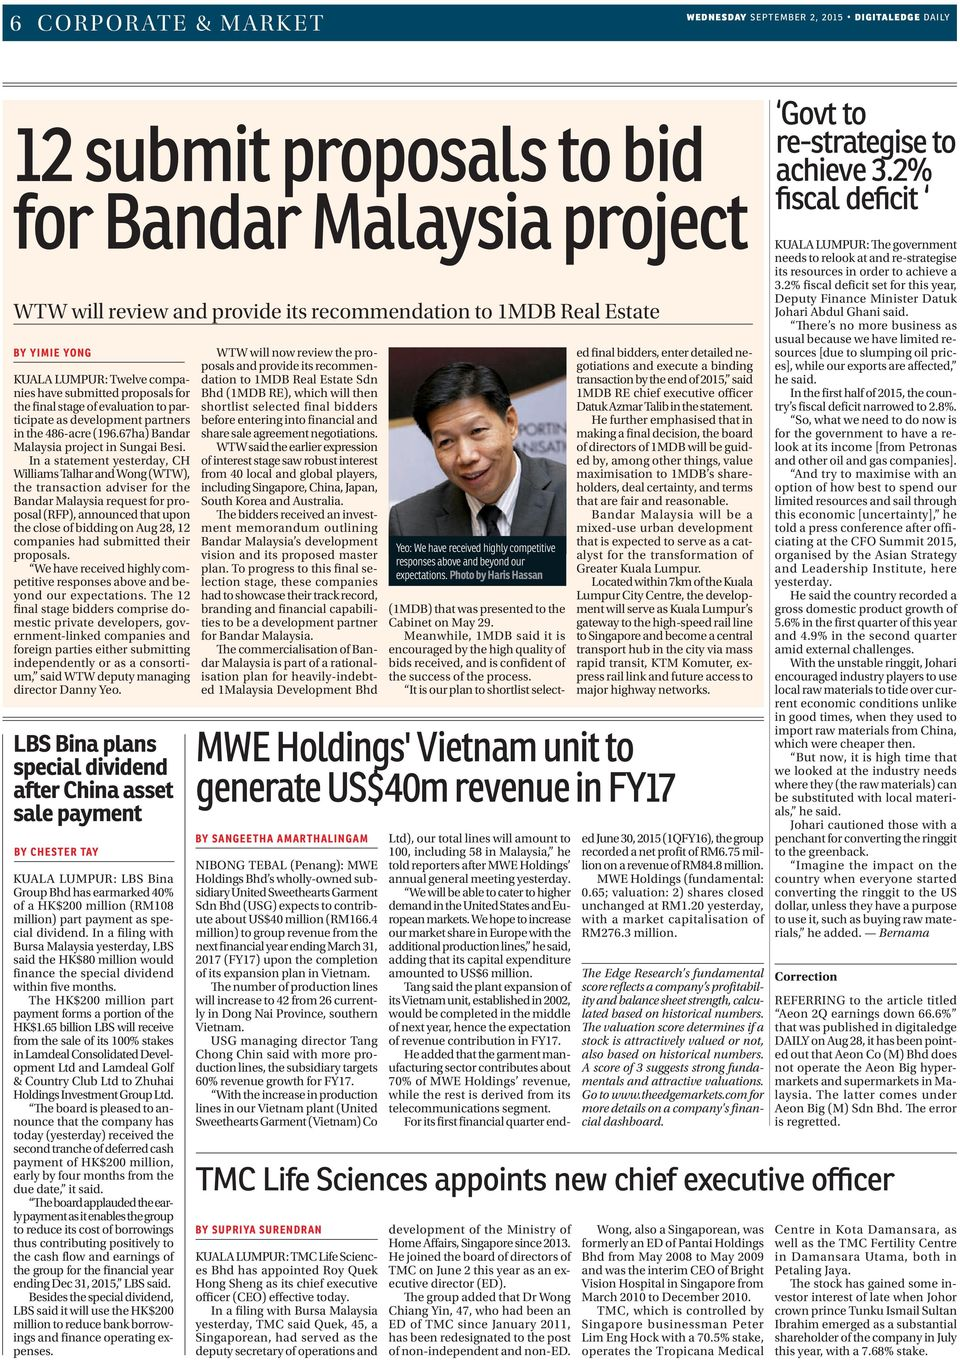 In a statement yesterday, CH Williams Talhar and Wong (WTW), the transaction adviser for the Bandar Malaysia request for proposal (RFP), announced that upon the close of bidding on Aug 28, 2